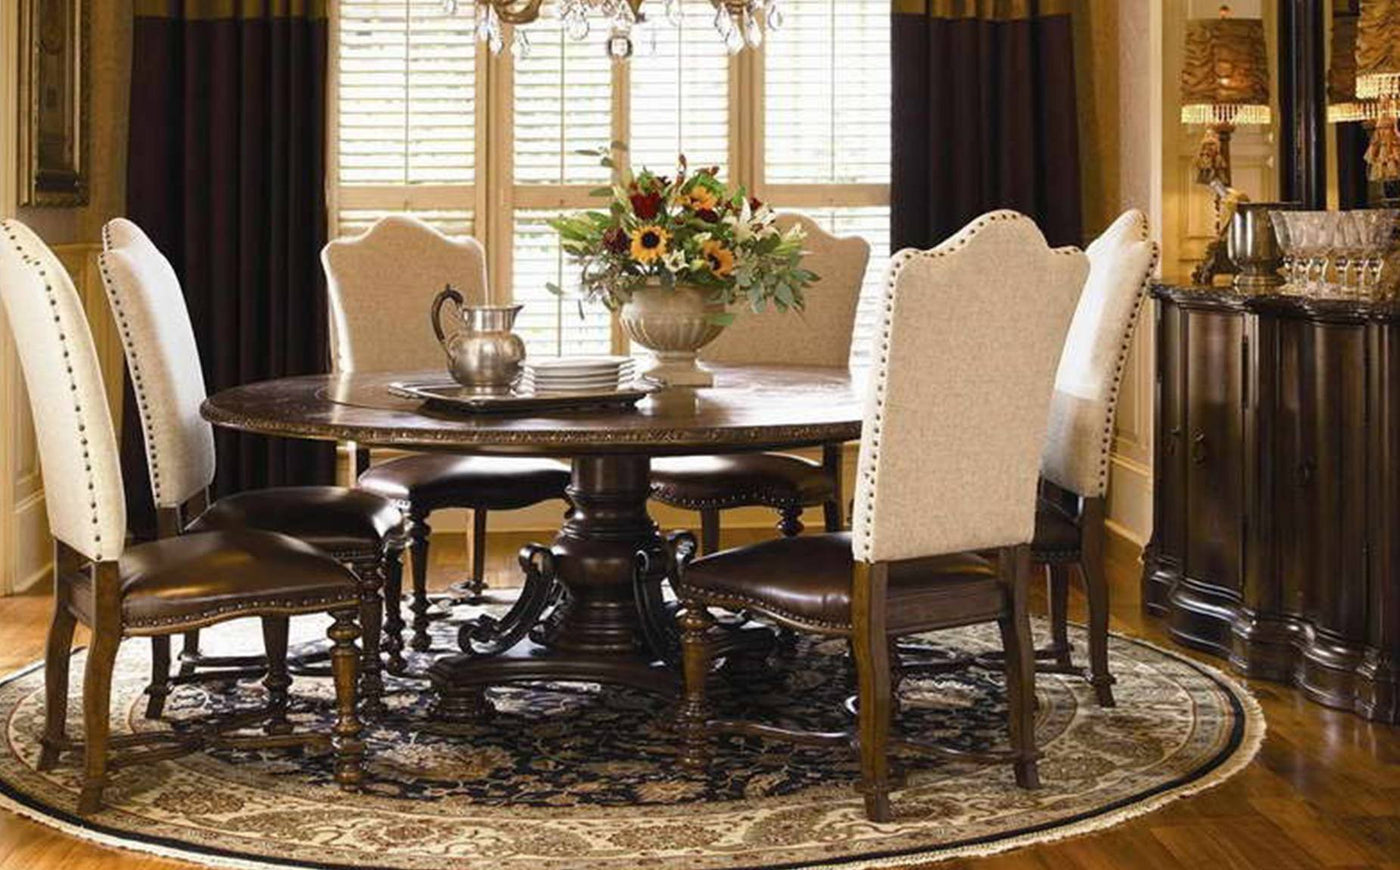 Round Table Round Rug.Rug Sizes Rug Size Guide Nw Rugs Furniture